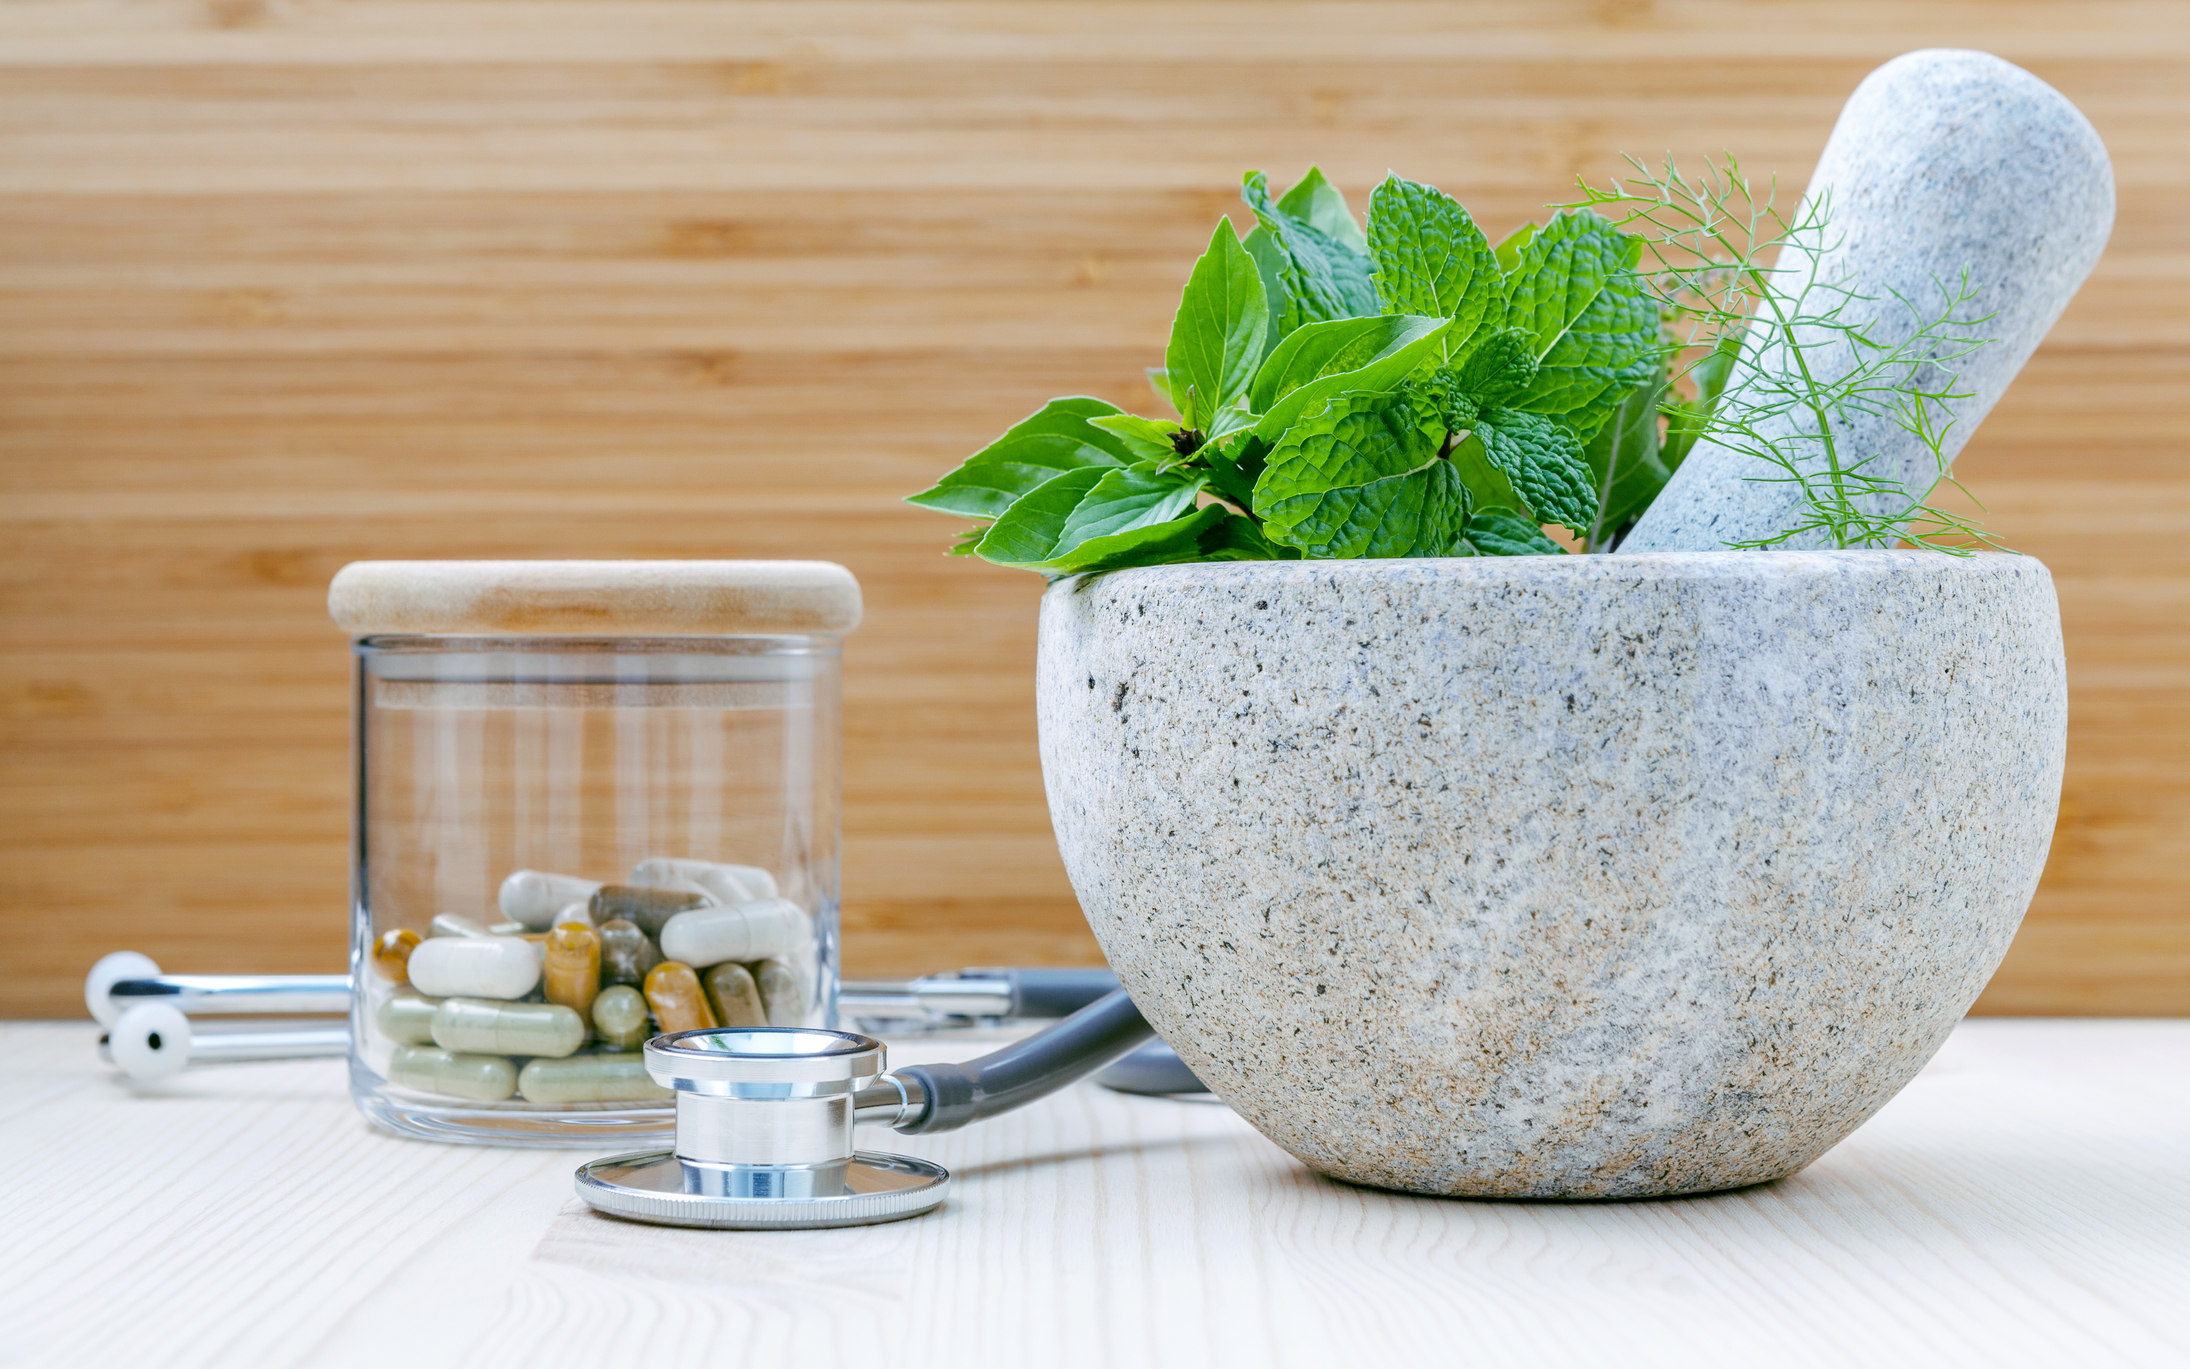 Better regulation of complementary and unconventional medicine and emerging treatments